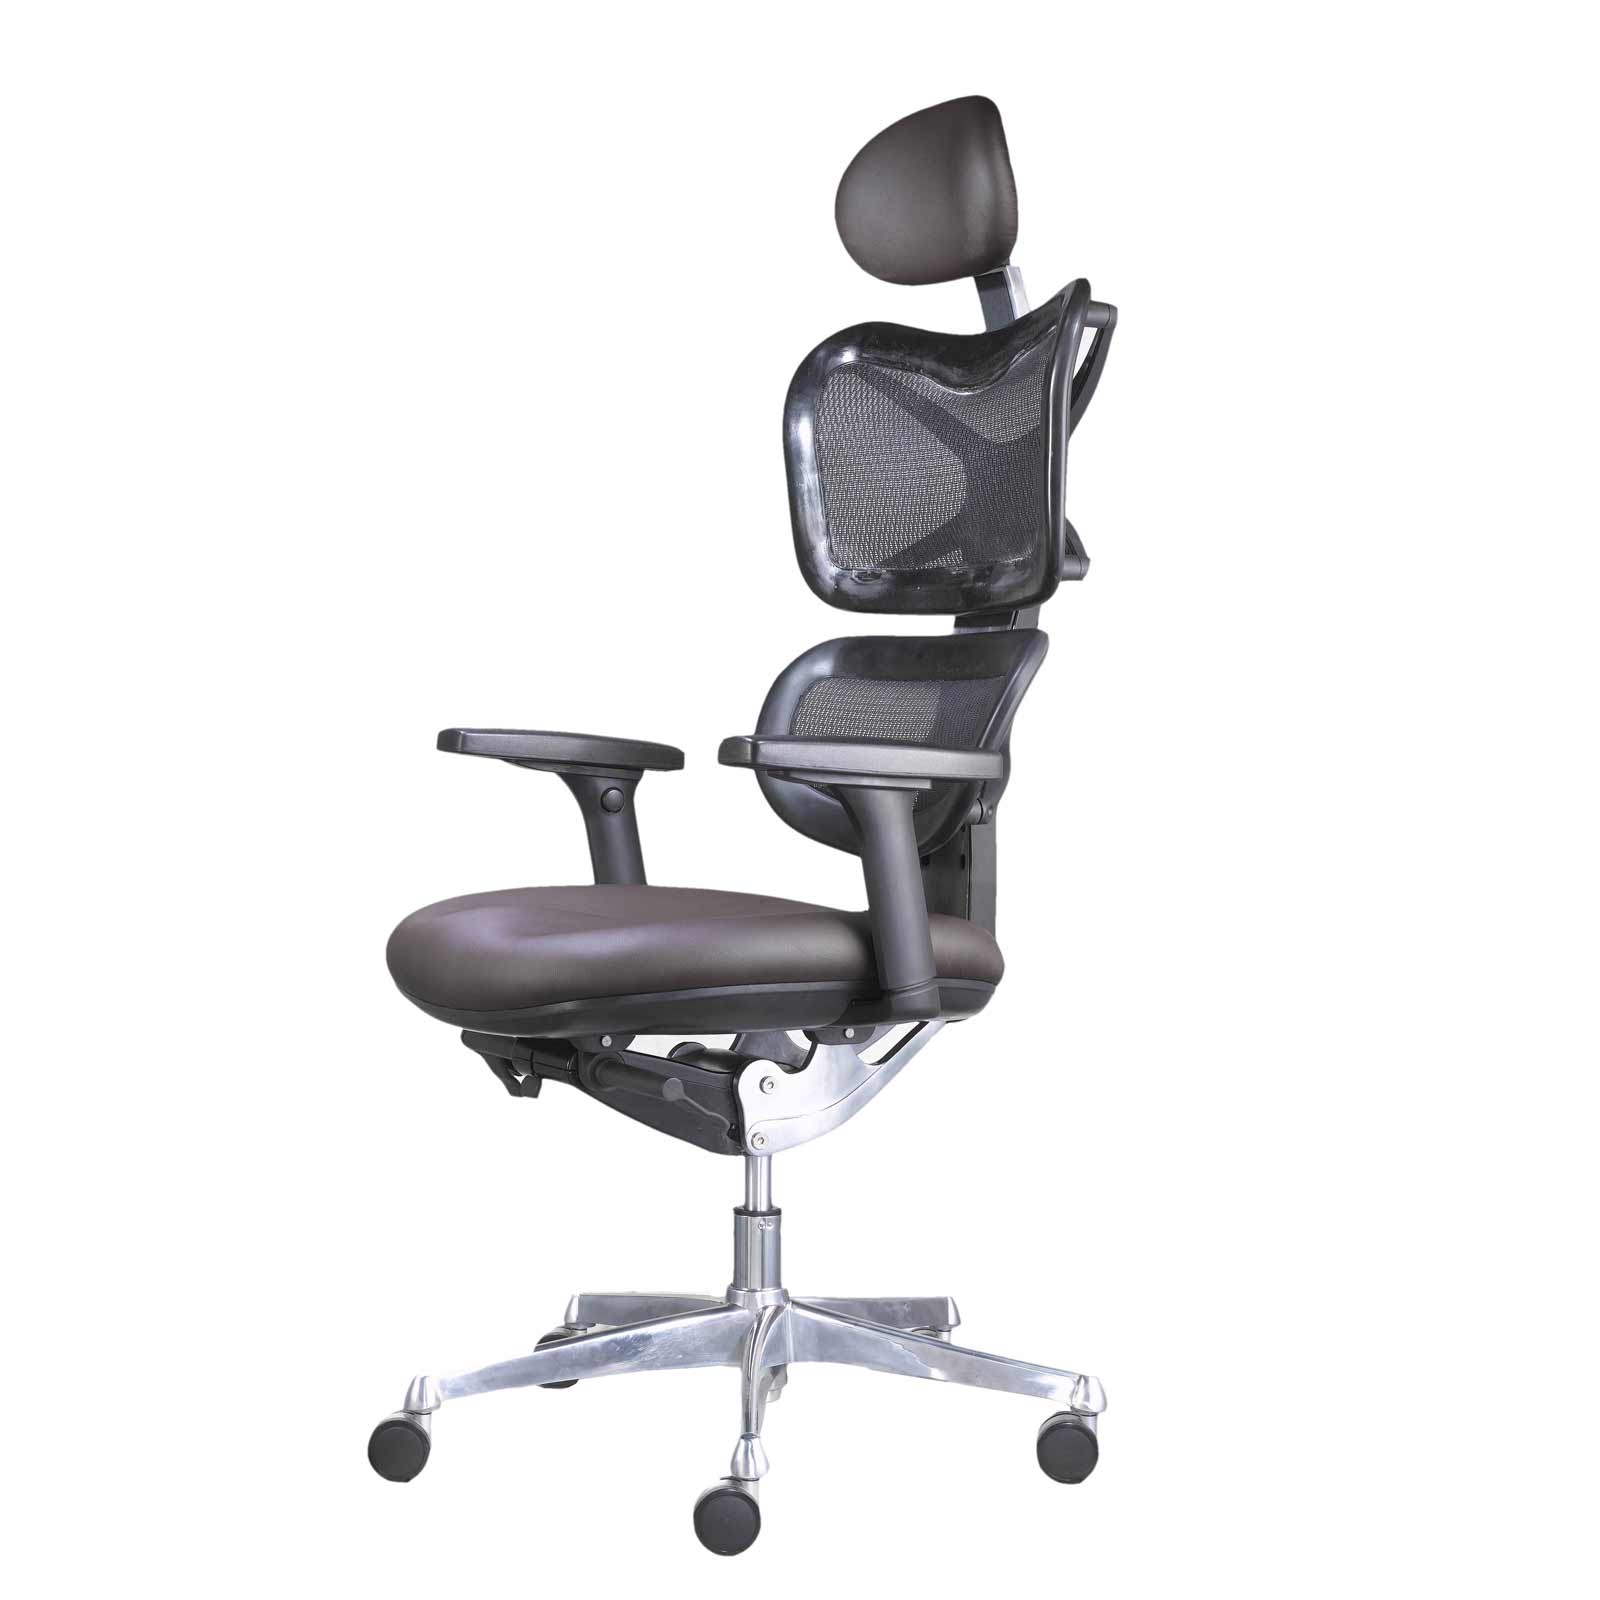 Modern Office Chair Office Chair Computer Chair Executive Chair Office Furniture